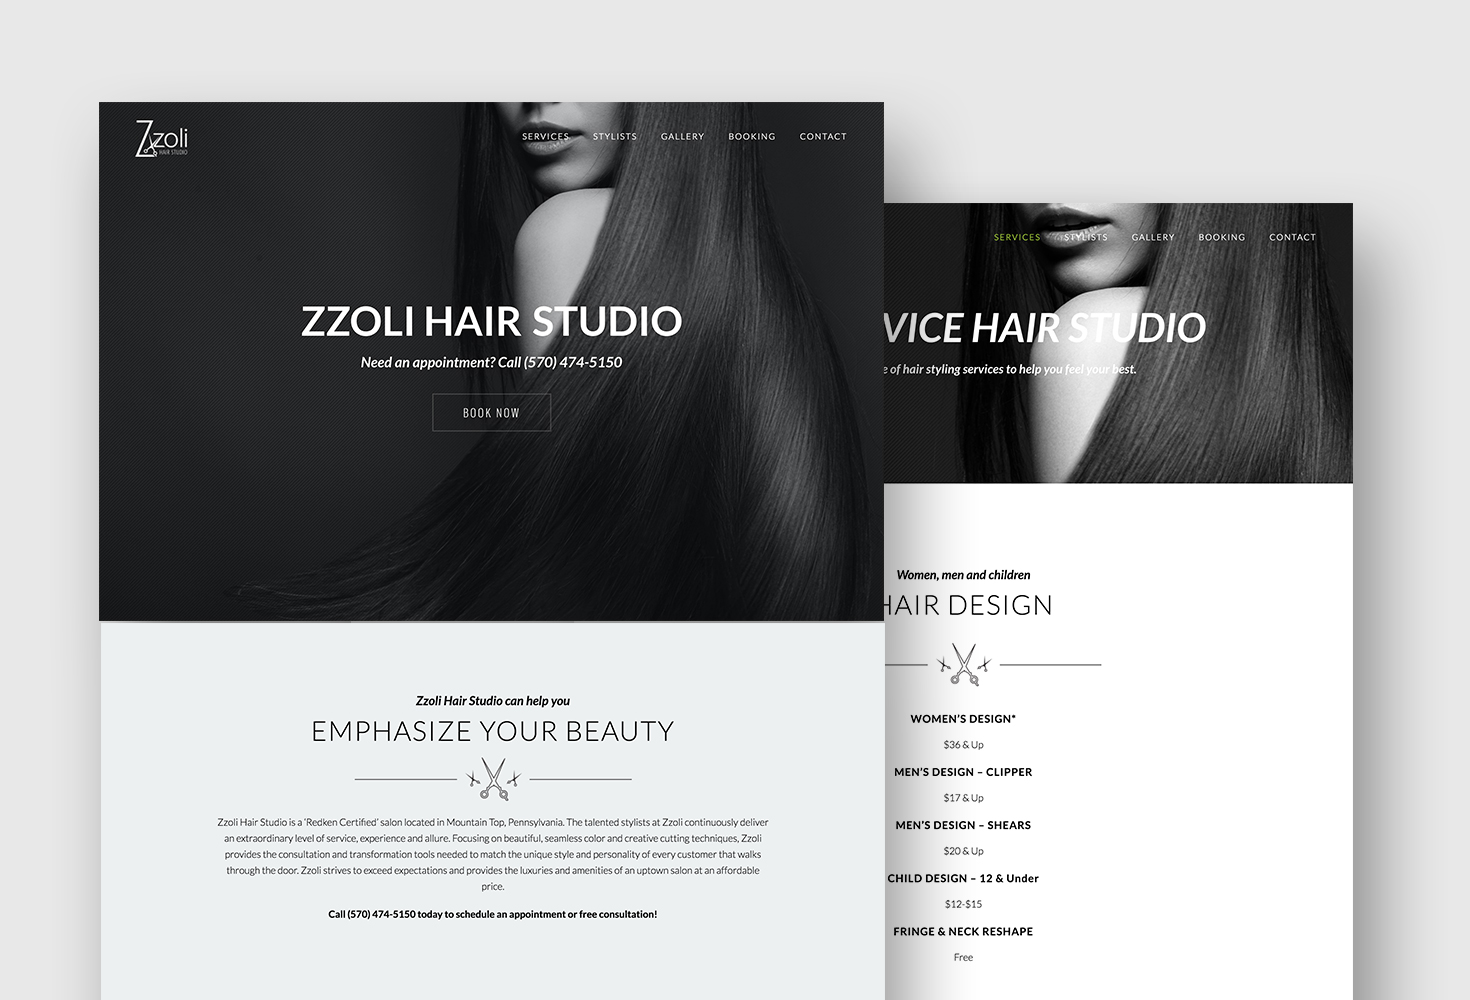 Website Design for Zzoli Hair Studio